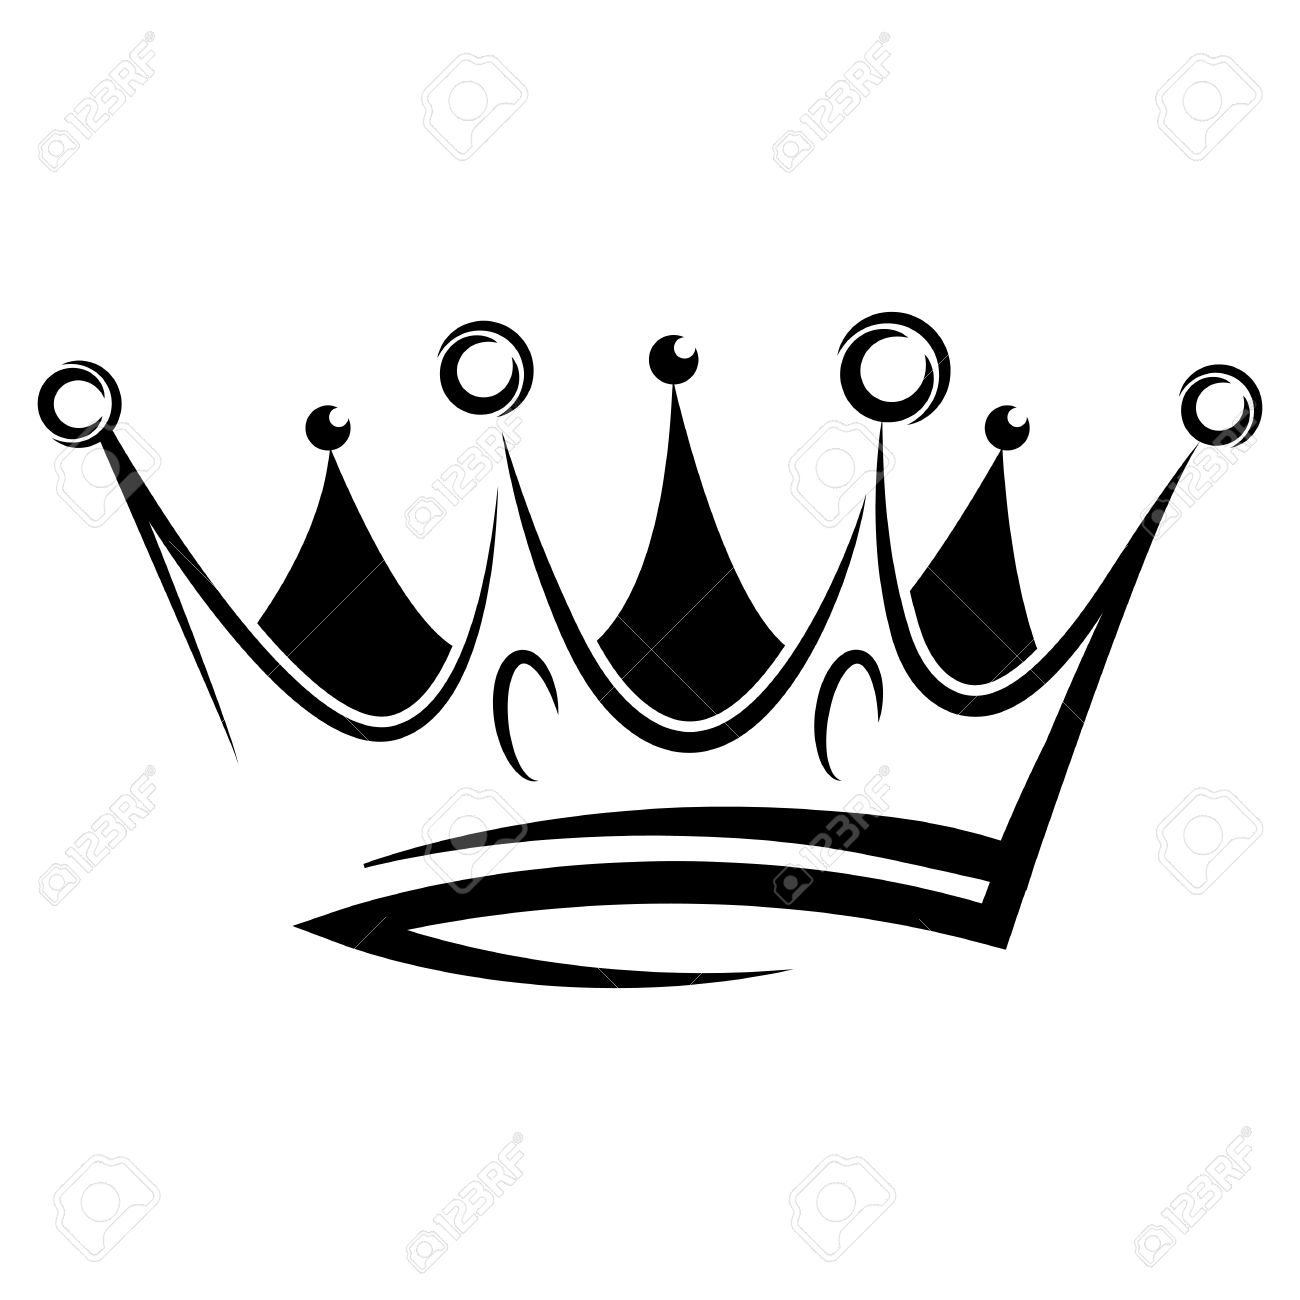 Black abstract crown for graphic design and logo on black background - 48691815